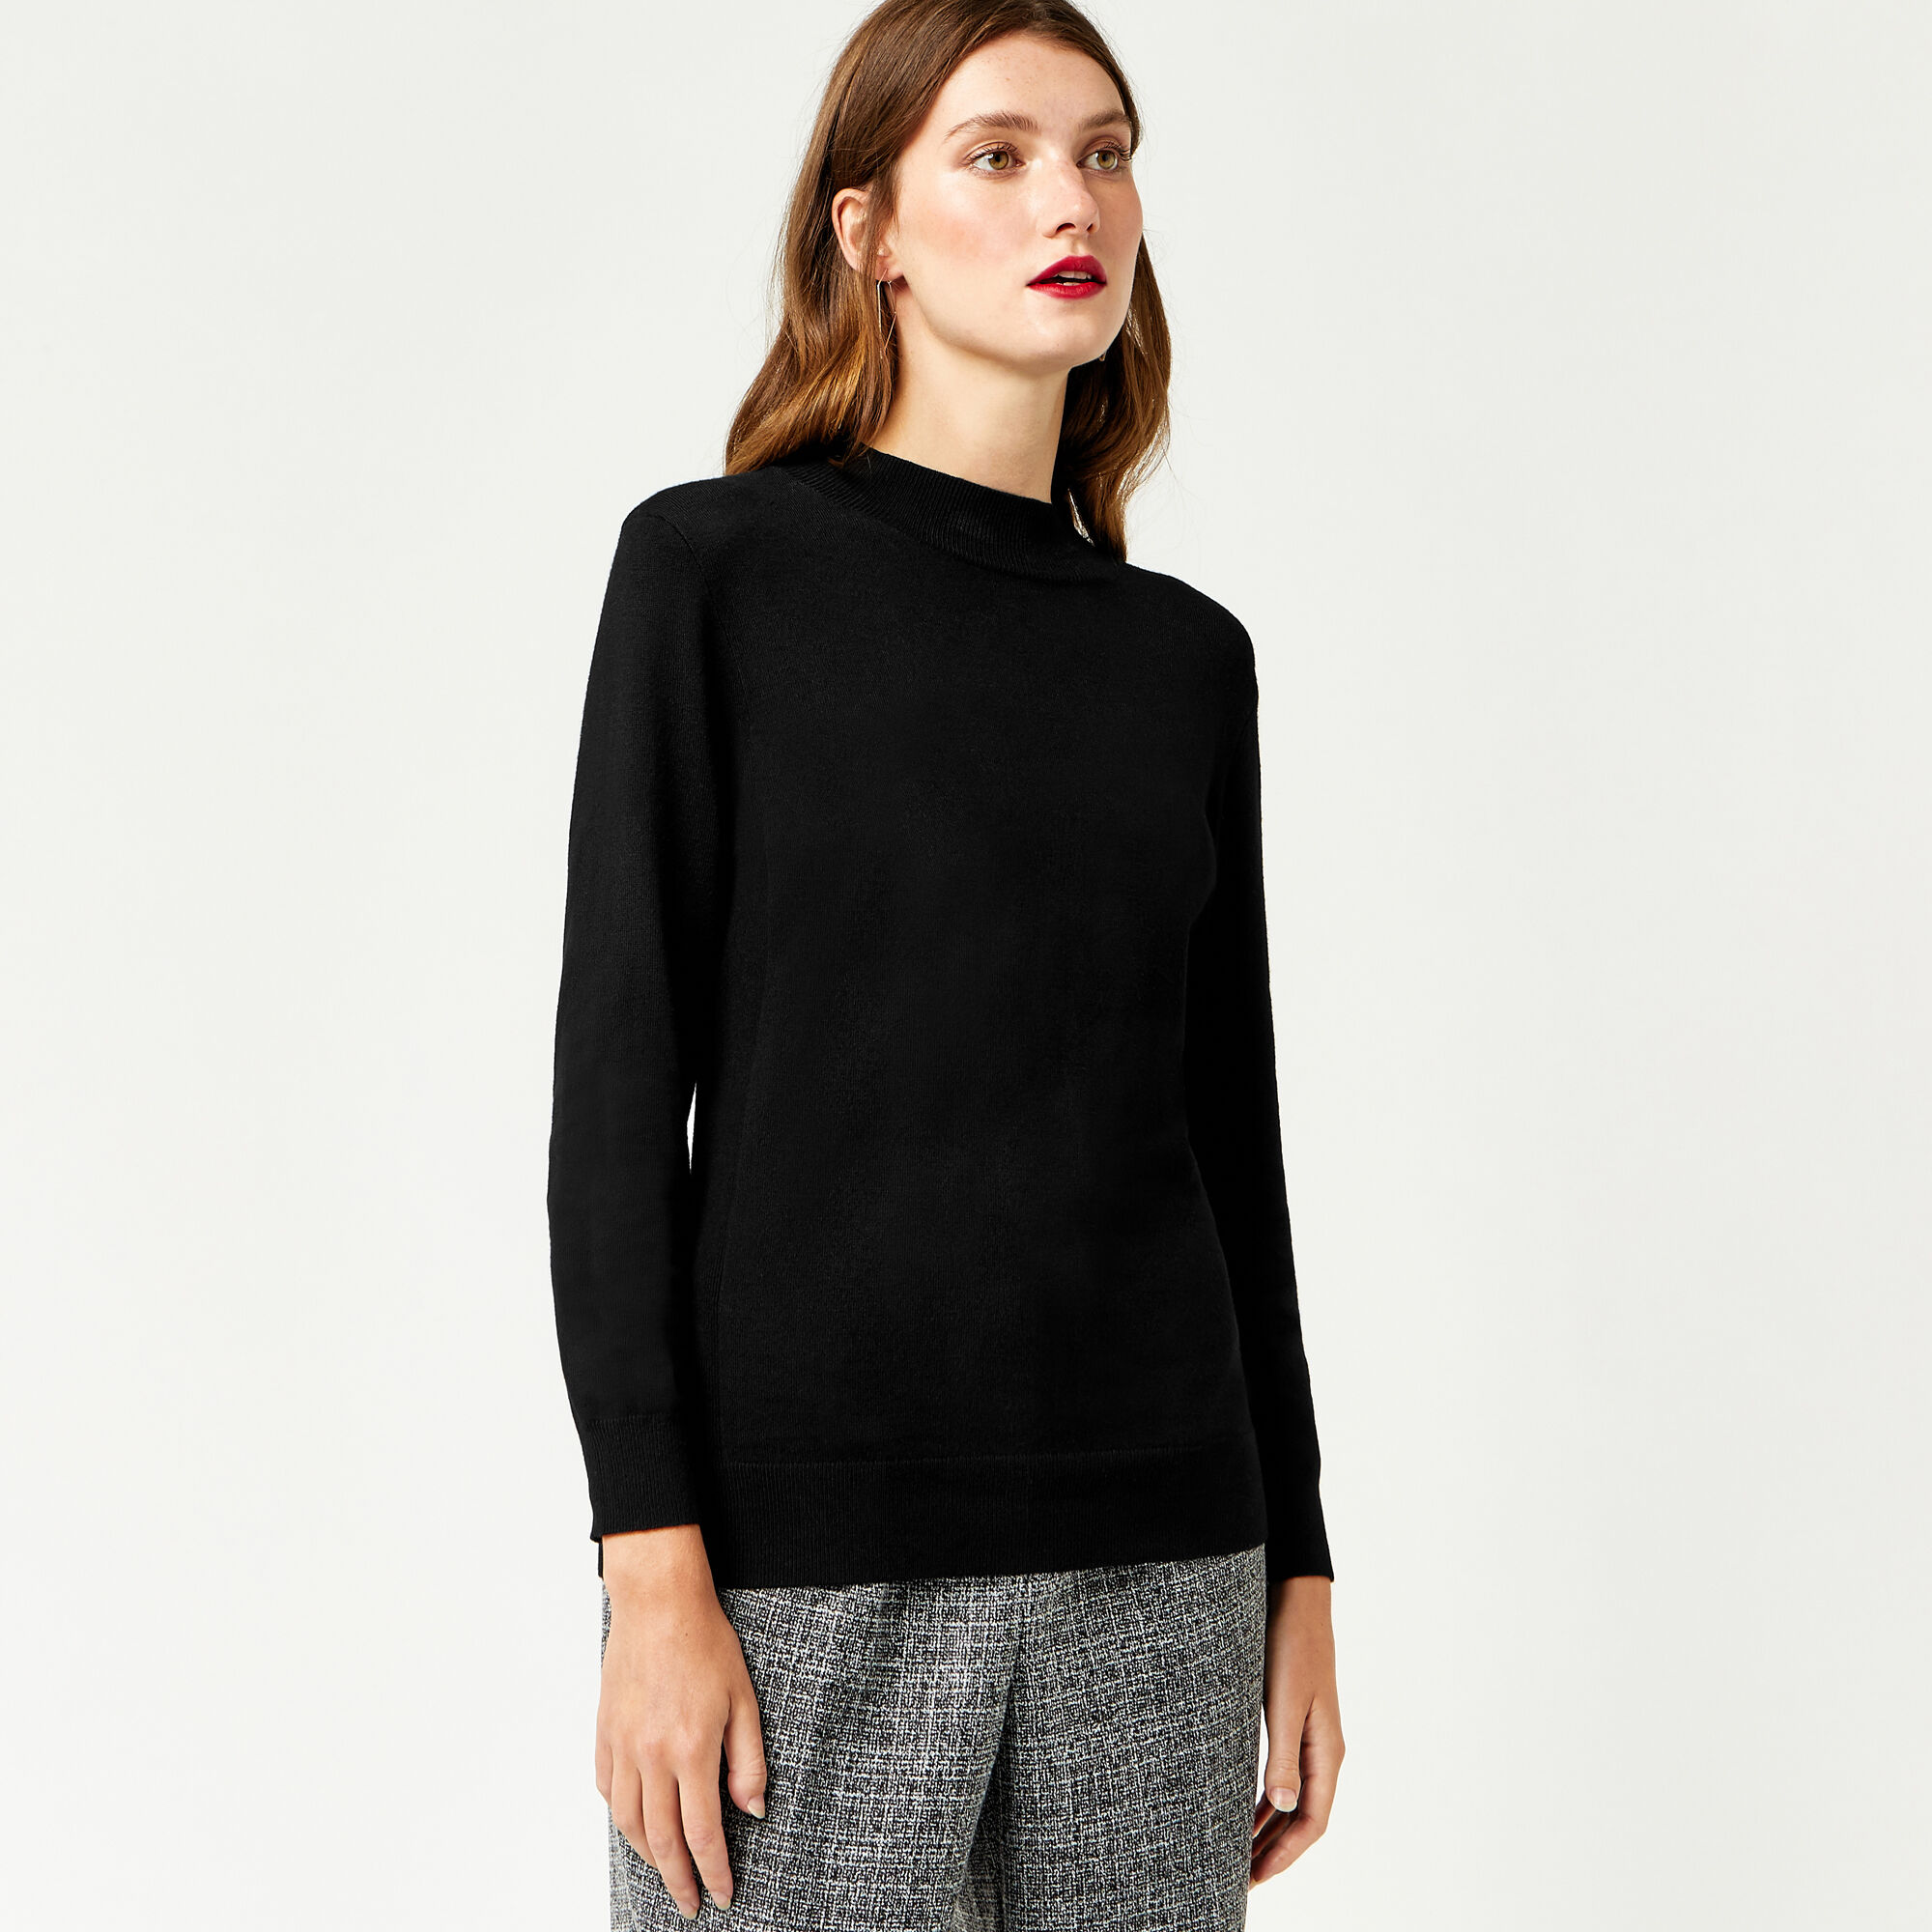 Warehouse, FUNNEL NECK JUMPER Black 1